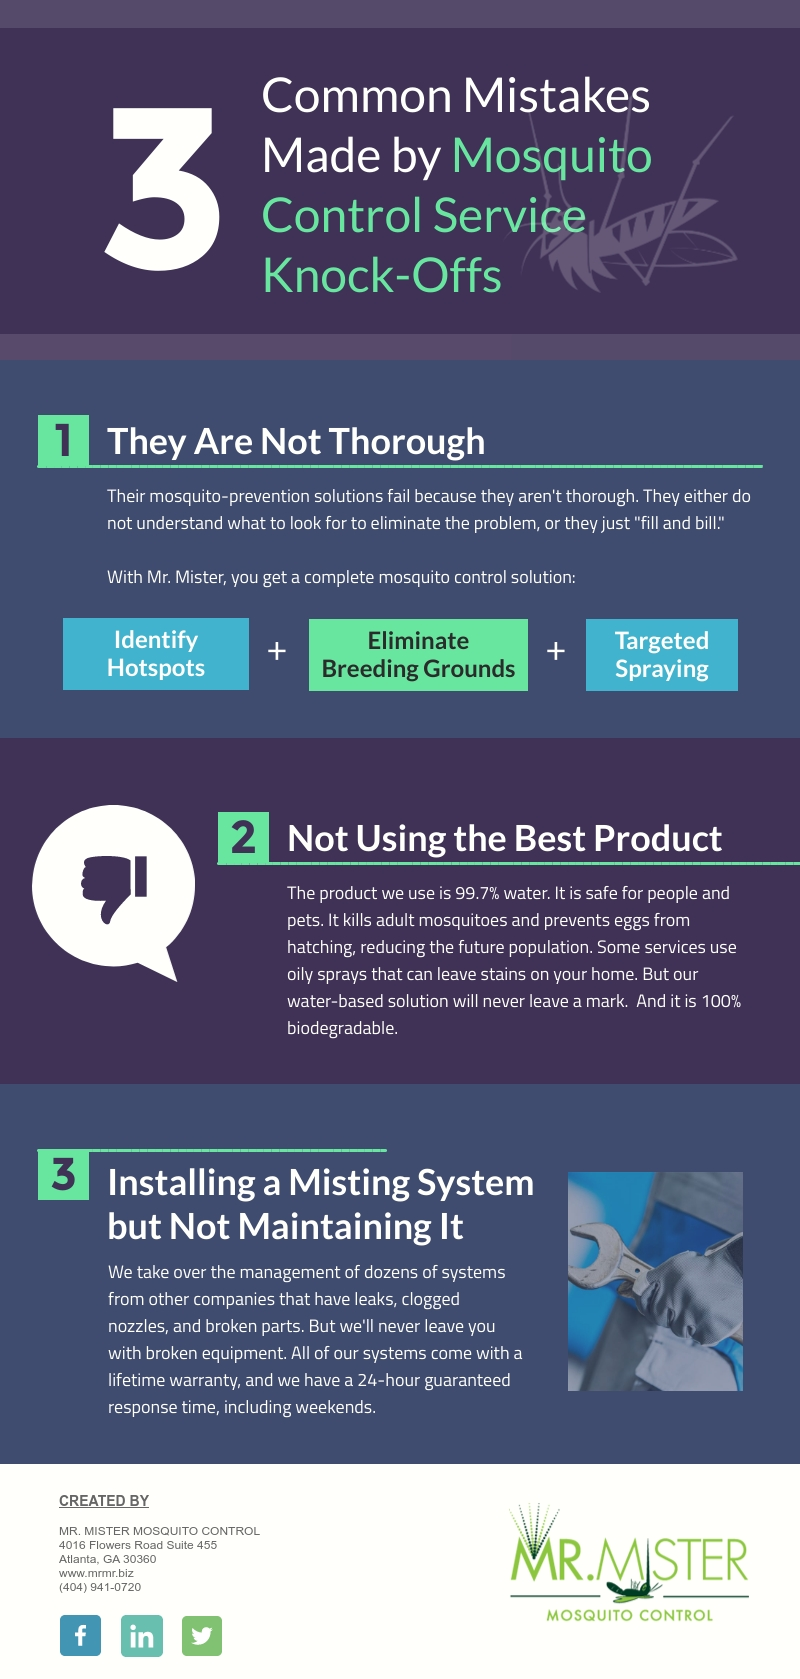 Common Mistakes Made by Mosquito Control Service Knock-Offs [infographic]